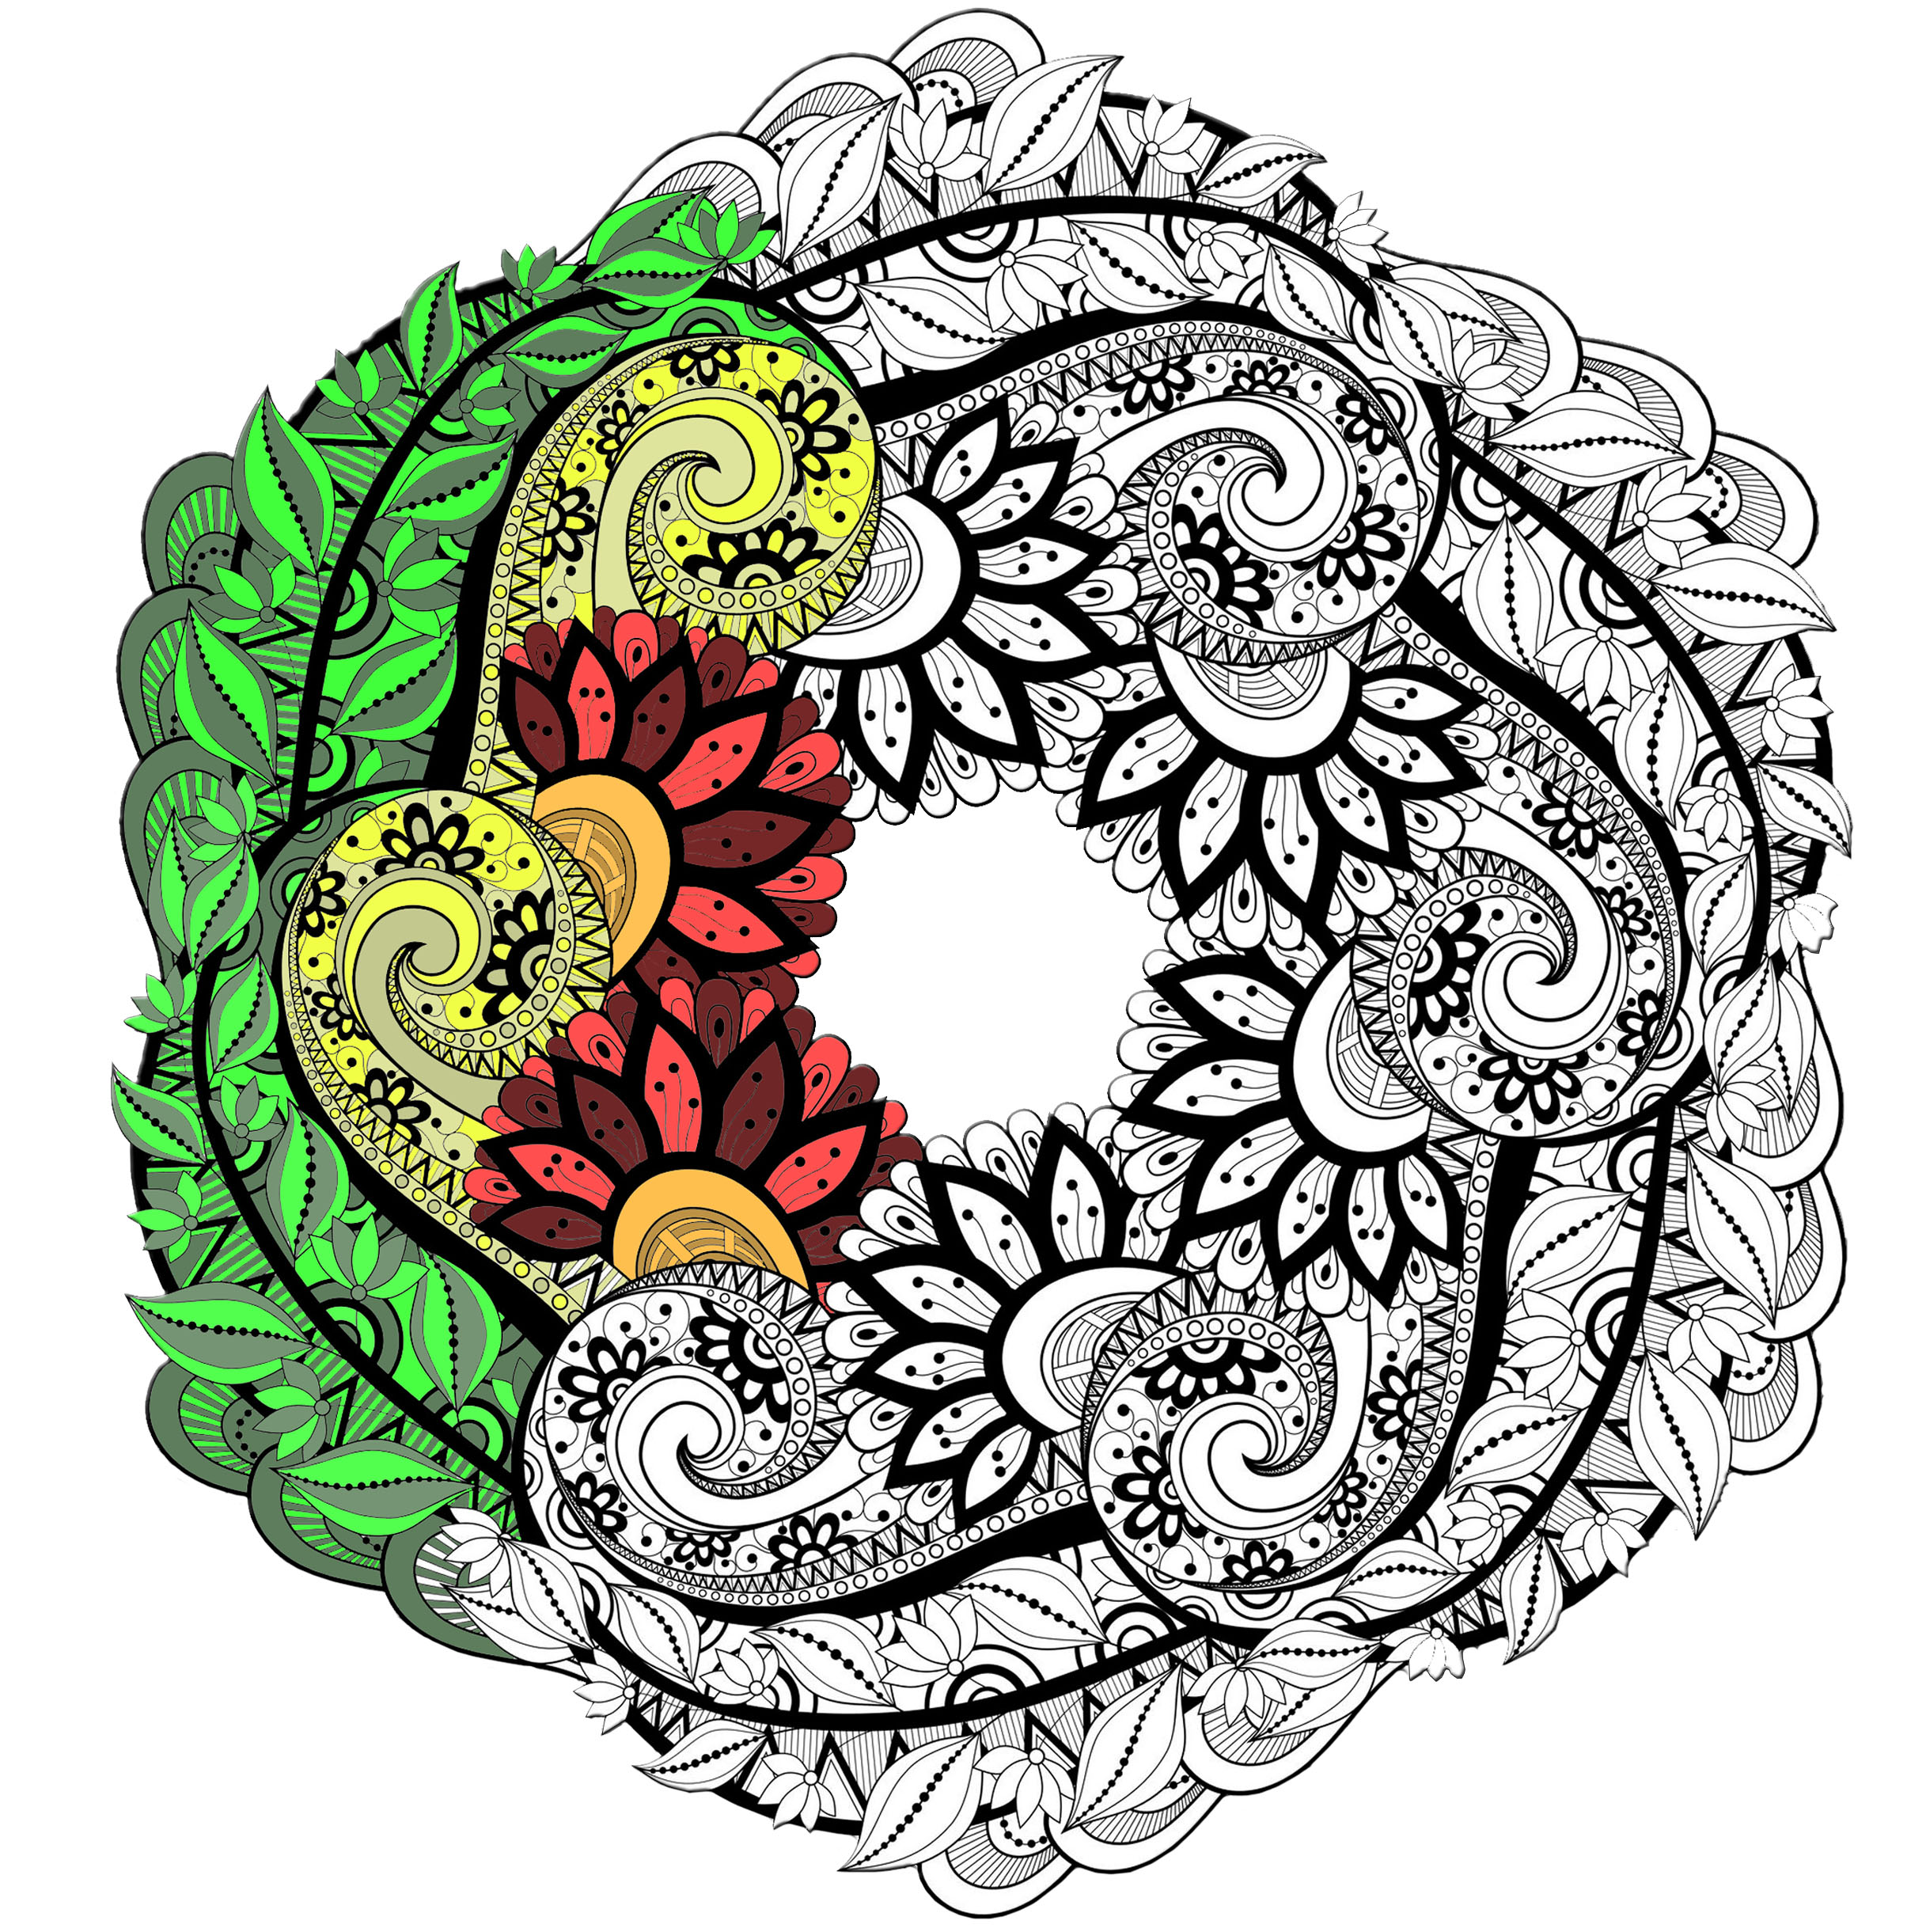 mandalas coloring pages for adults justcolor - Adult Coloring Pages Mandala